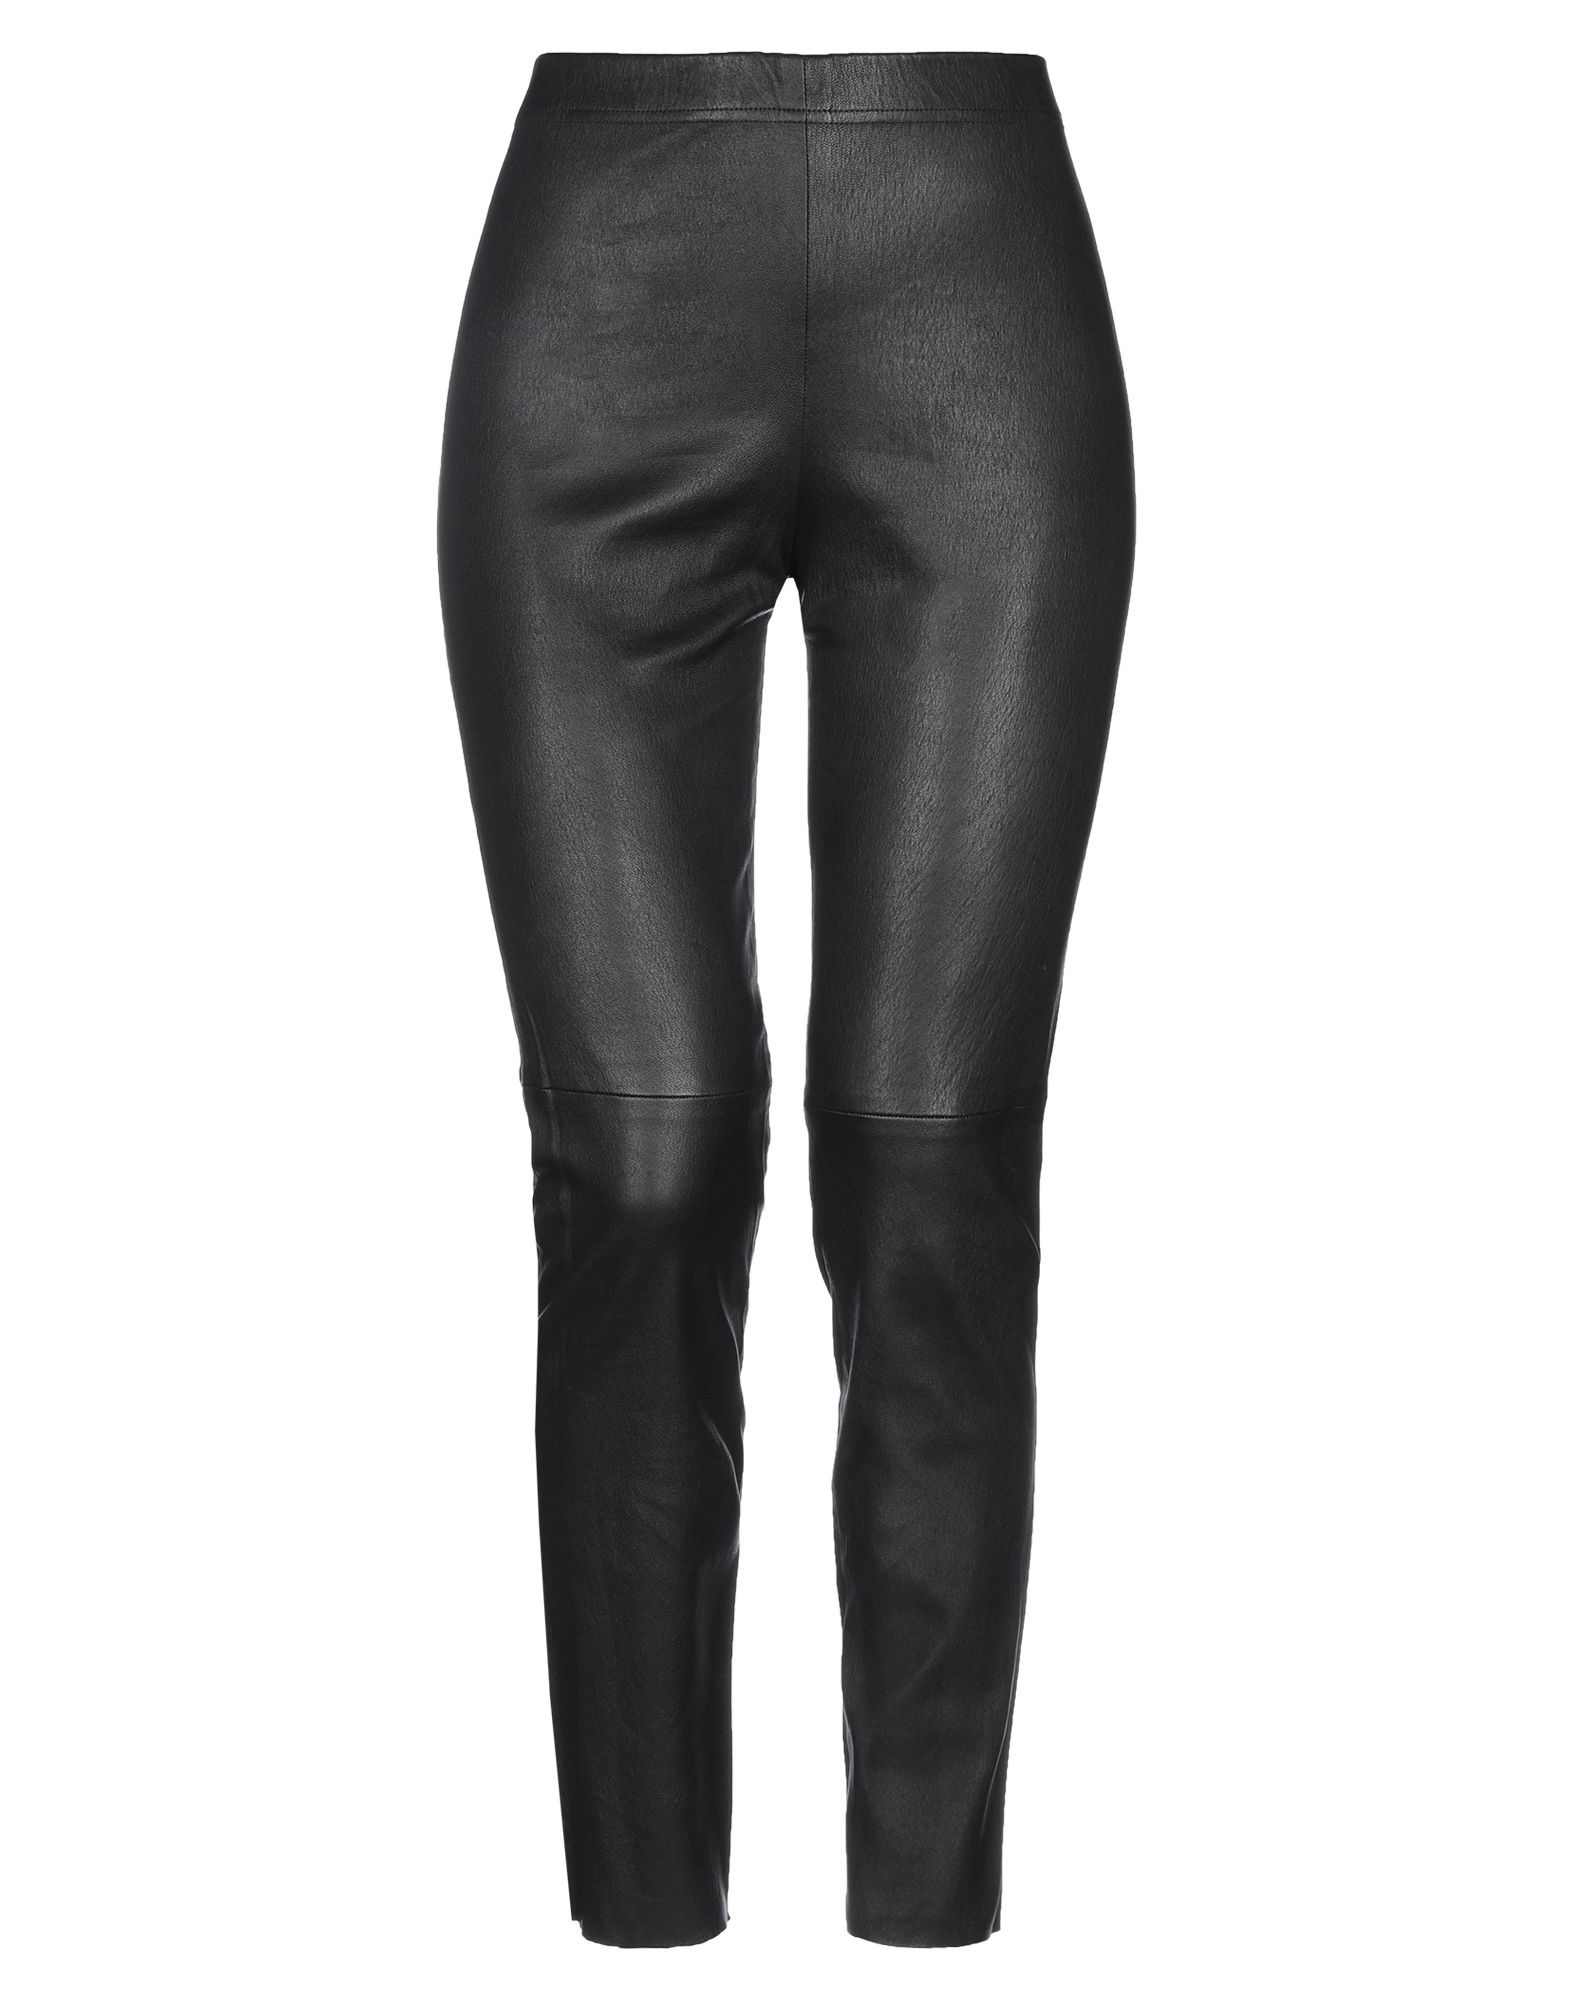 PLEIN SUD Leggings. leather, no appliqués, basic solid color, mid rise, regular fit, tapered leg, elasticized waist, no pockets, contains non-textile parts of animal origin. 100% Soft Leather